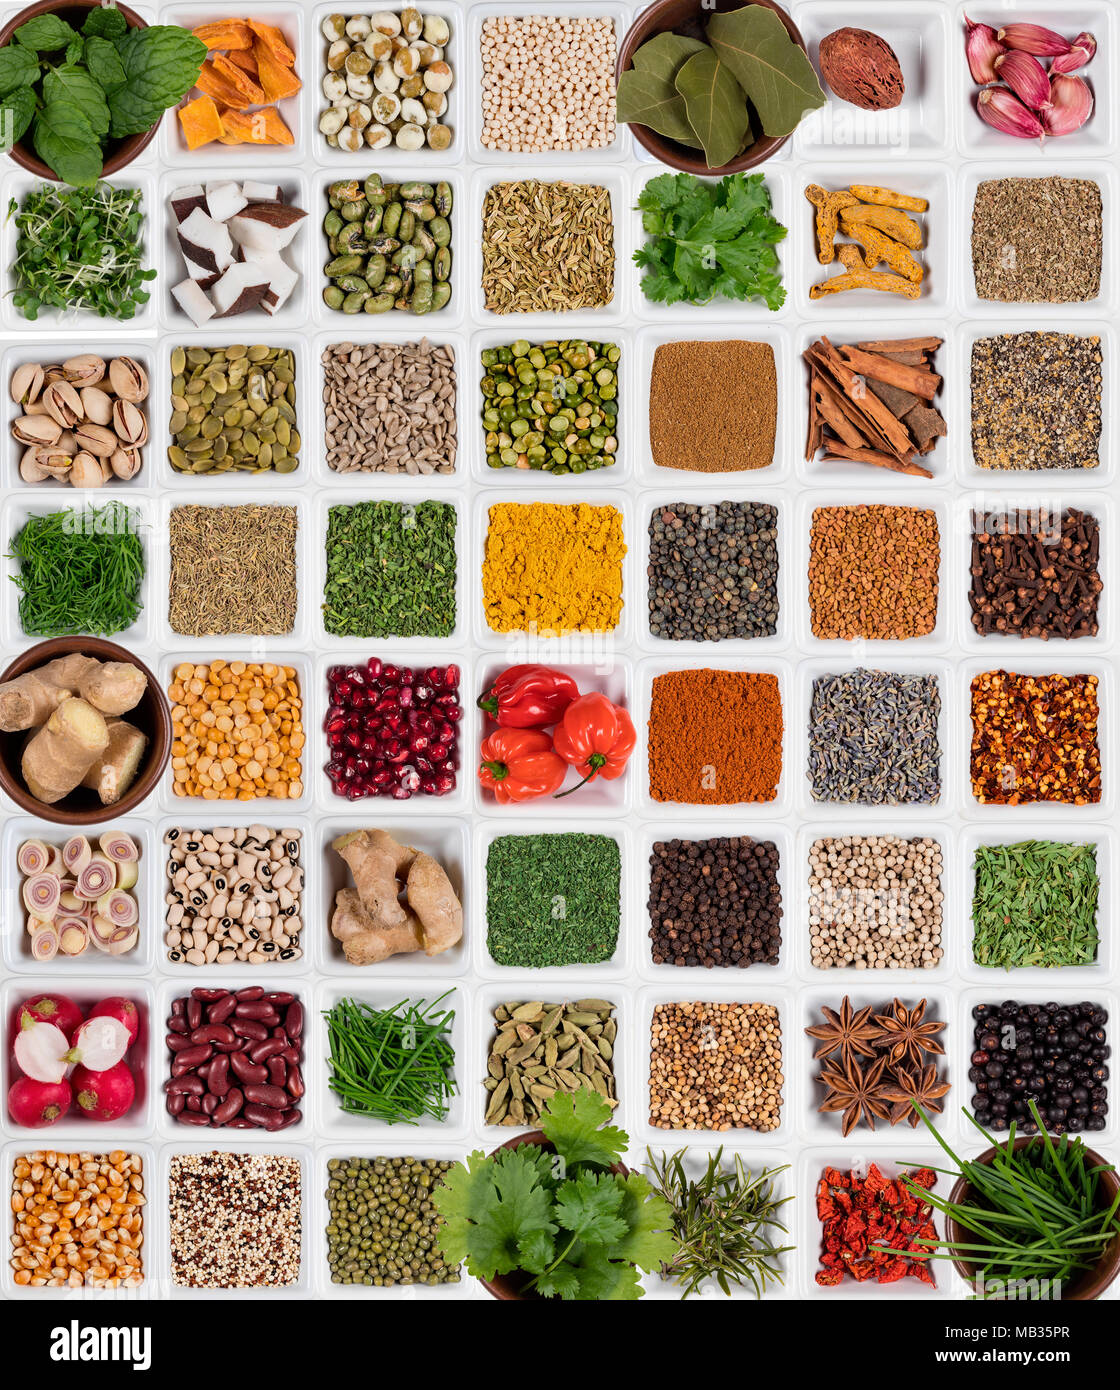 Selection of Herbs and Spices used to add flavor and seasoning to cooking. - Stock Image